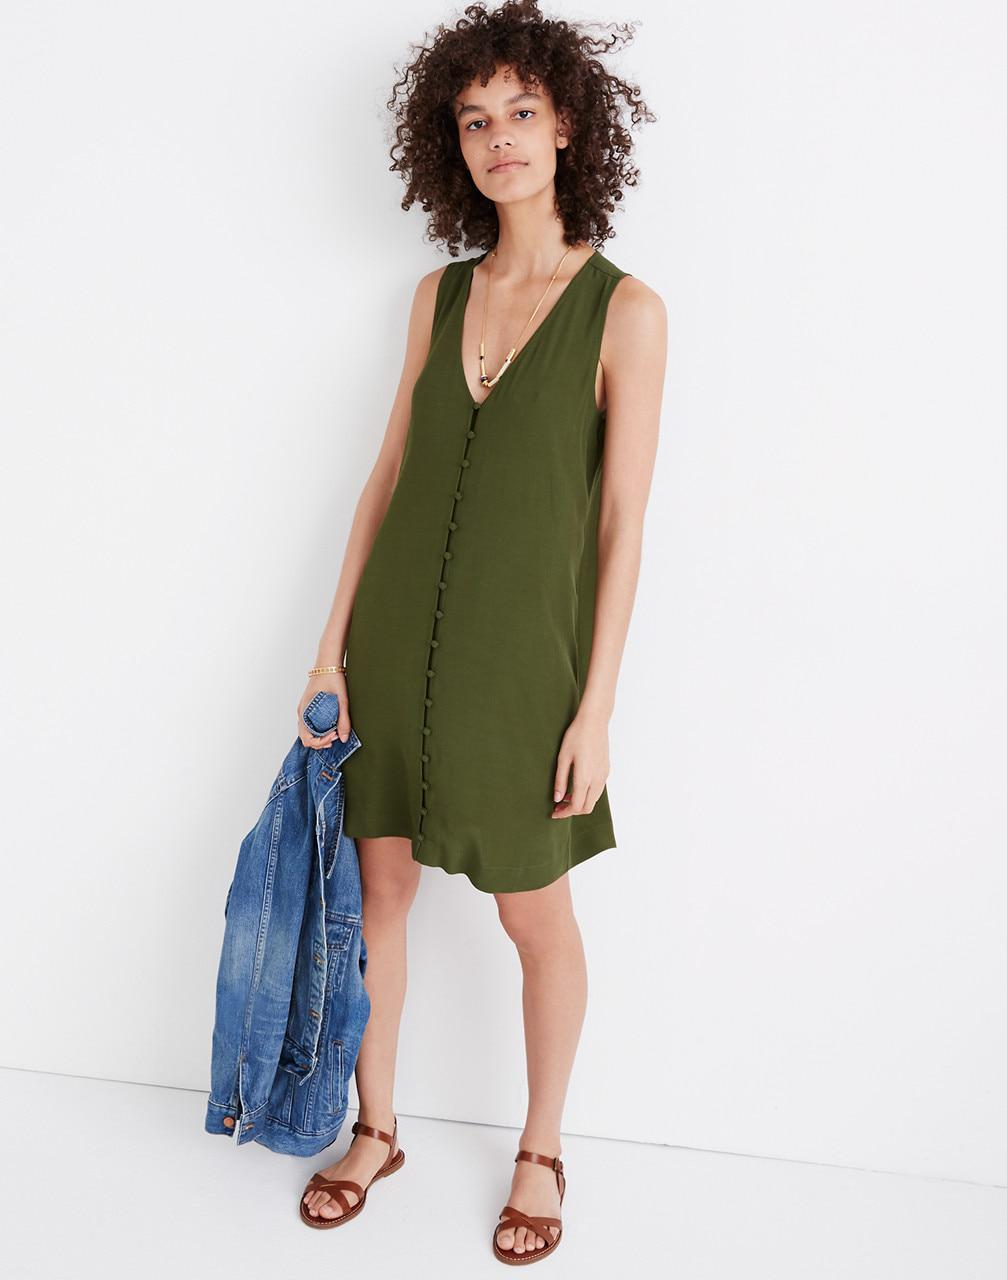 b7d2696bf1 Lyst - Madewell Heather Button-front Dress in Green